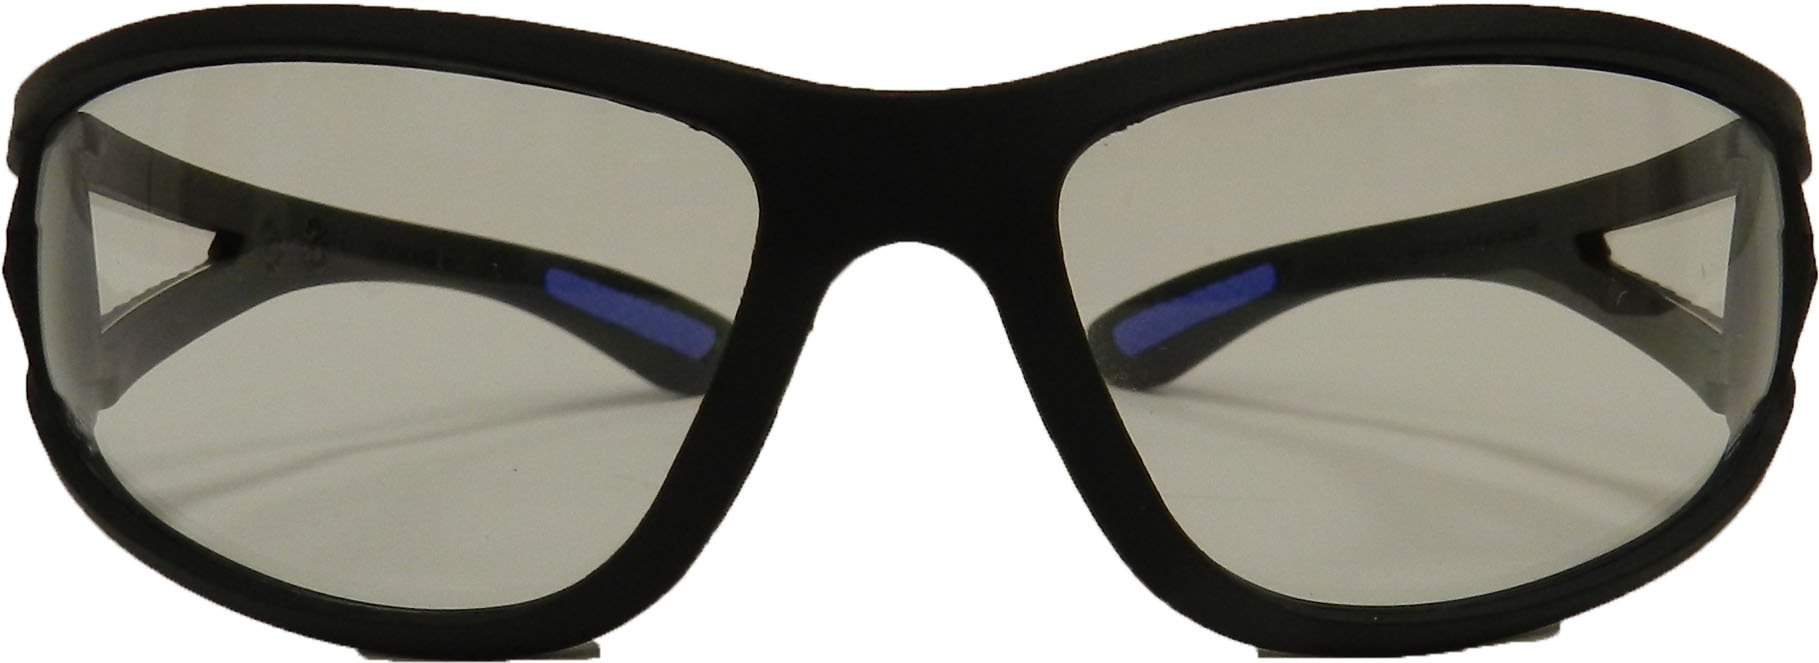 ERB 16670 ERBan Safety Glasses, Black Frame with Clear Lens